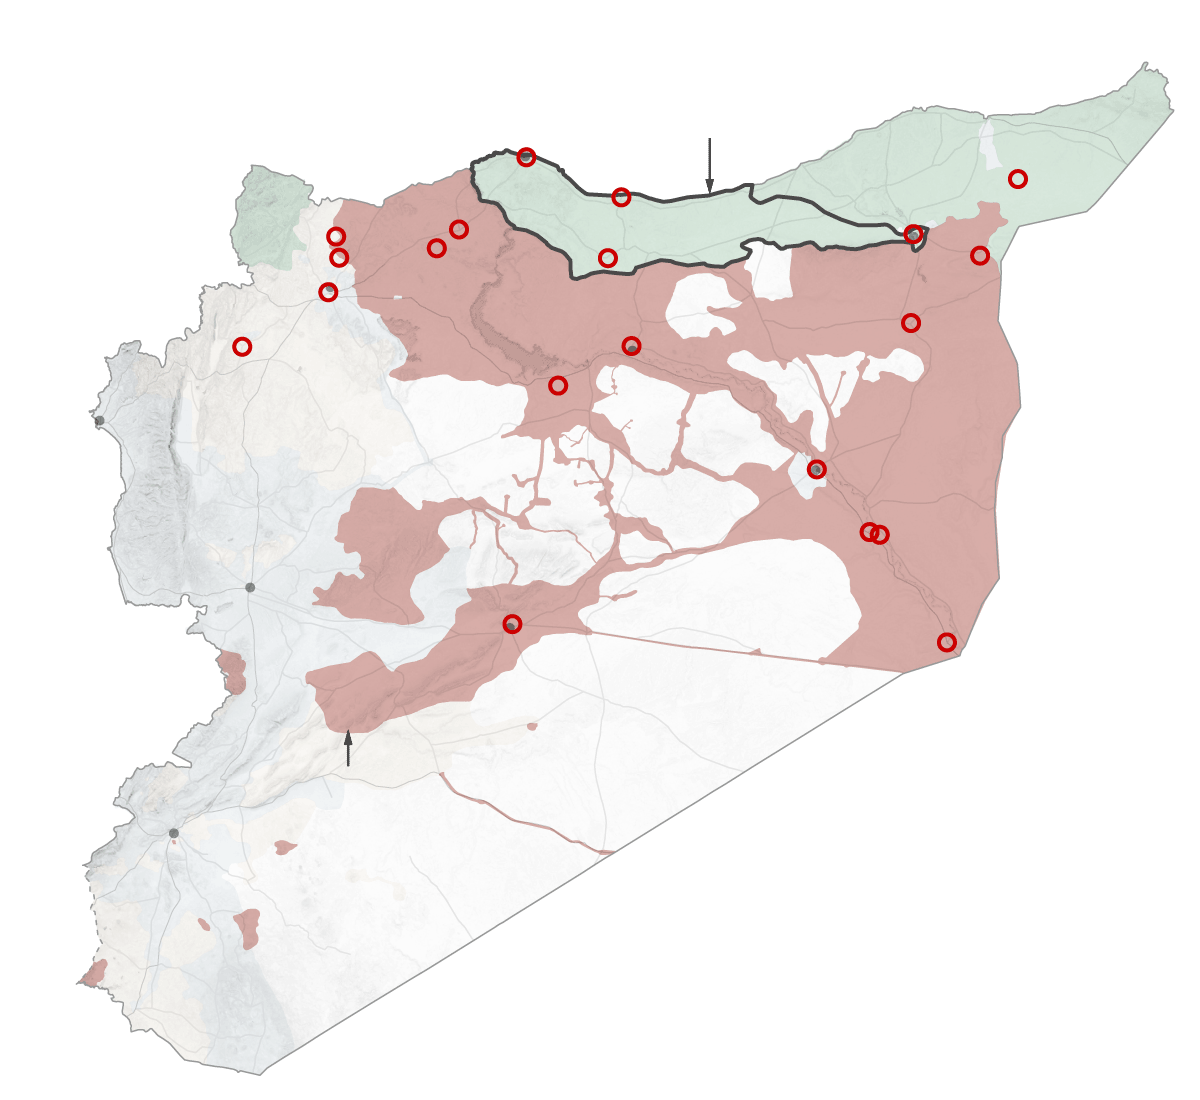 Syria. Untangling the overlapping conflicts